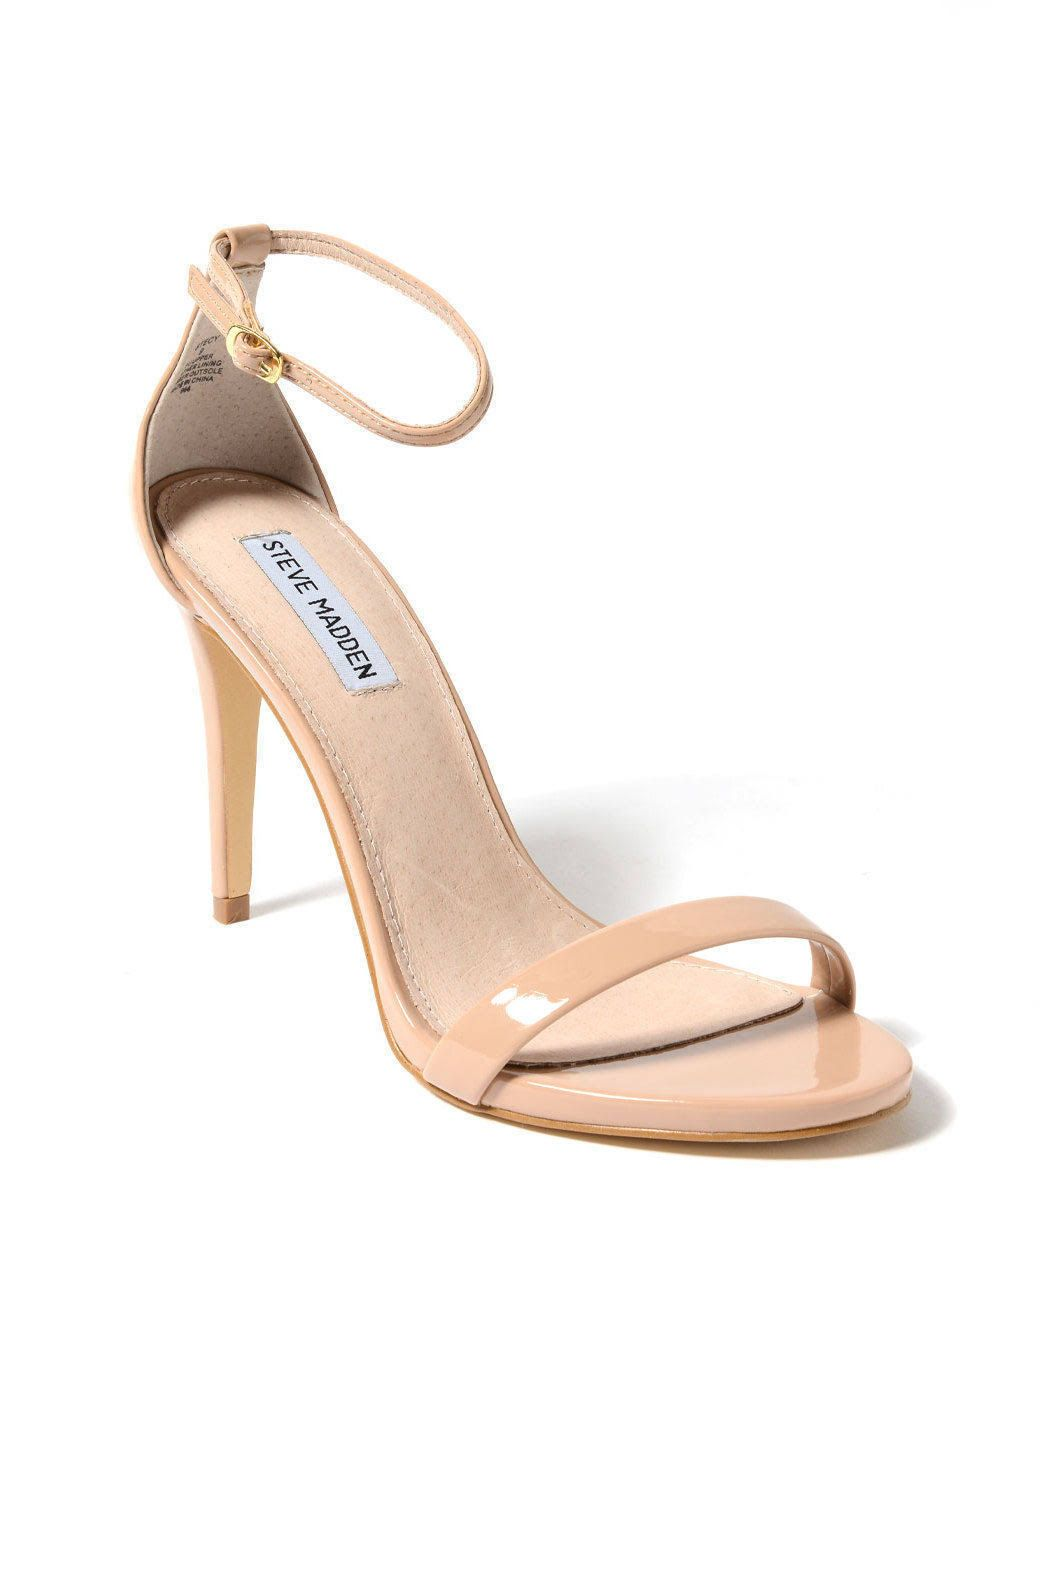 91cb3c2c9c3 nude strappy sandals with small heel - Google Search